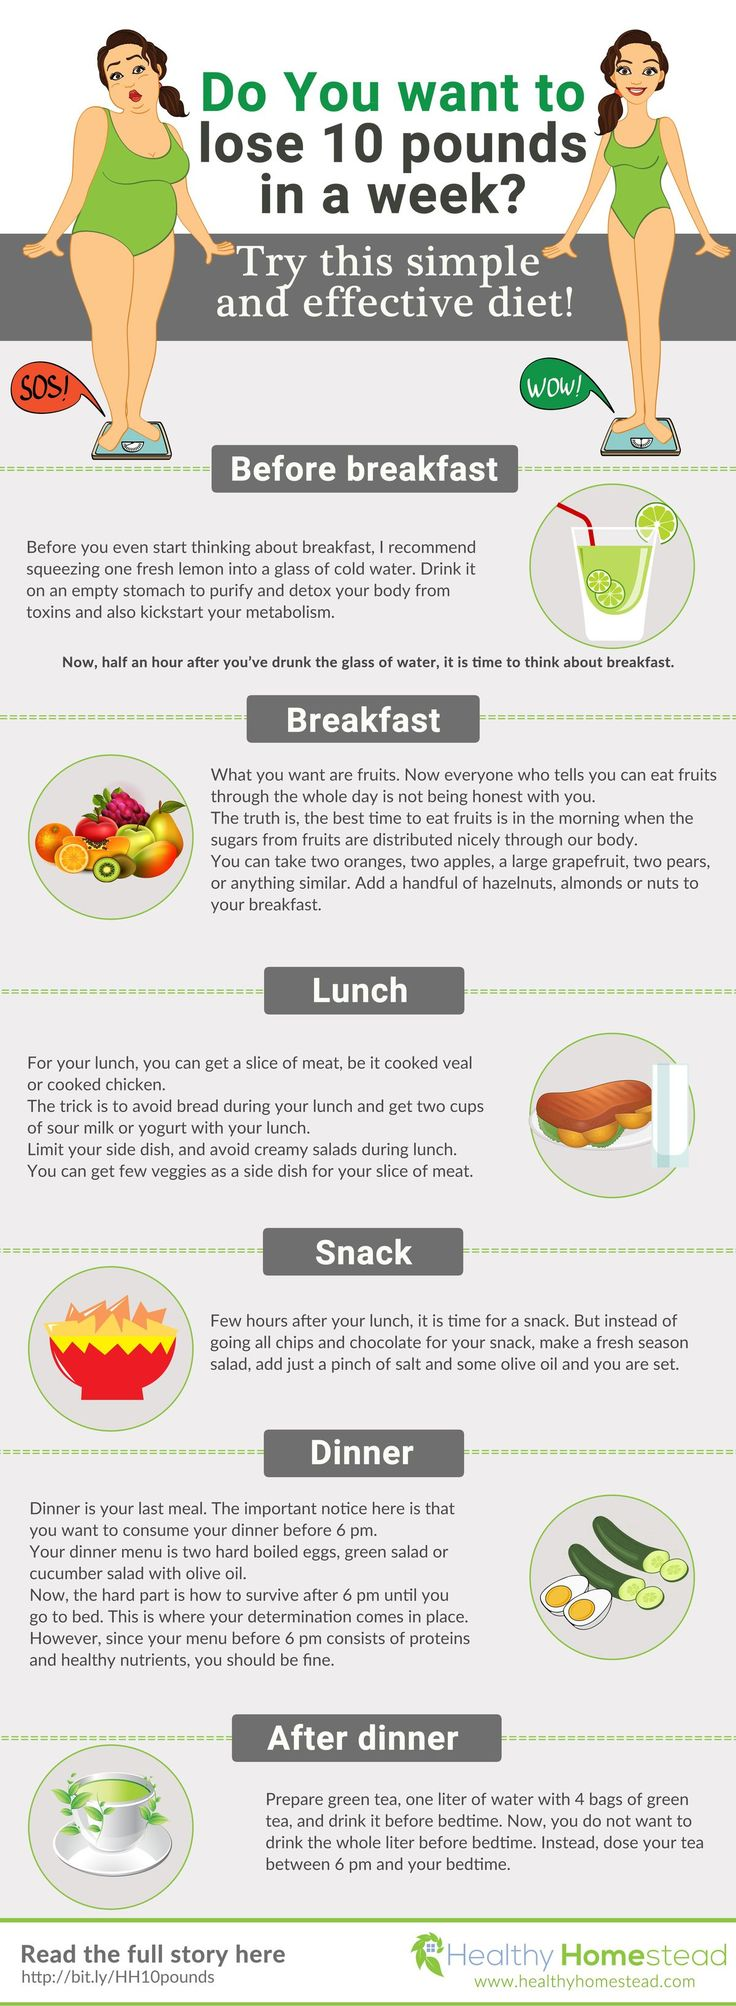 Do you want to lose weight? #weightloss